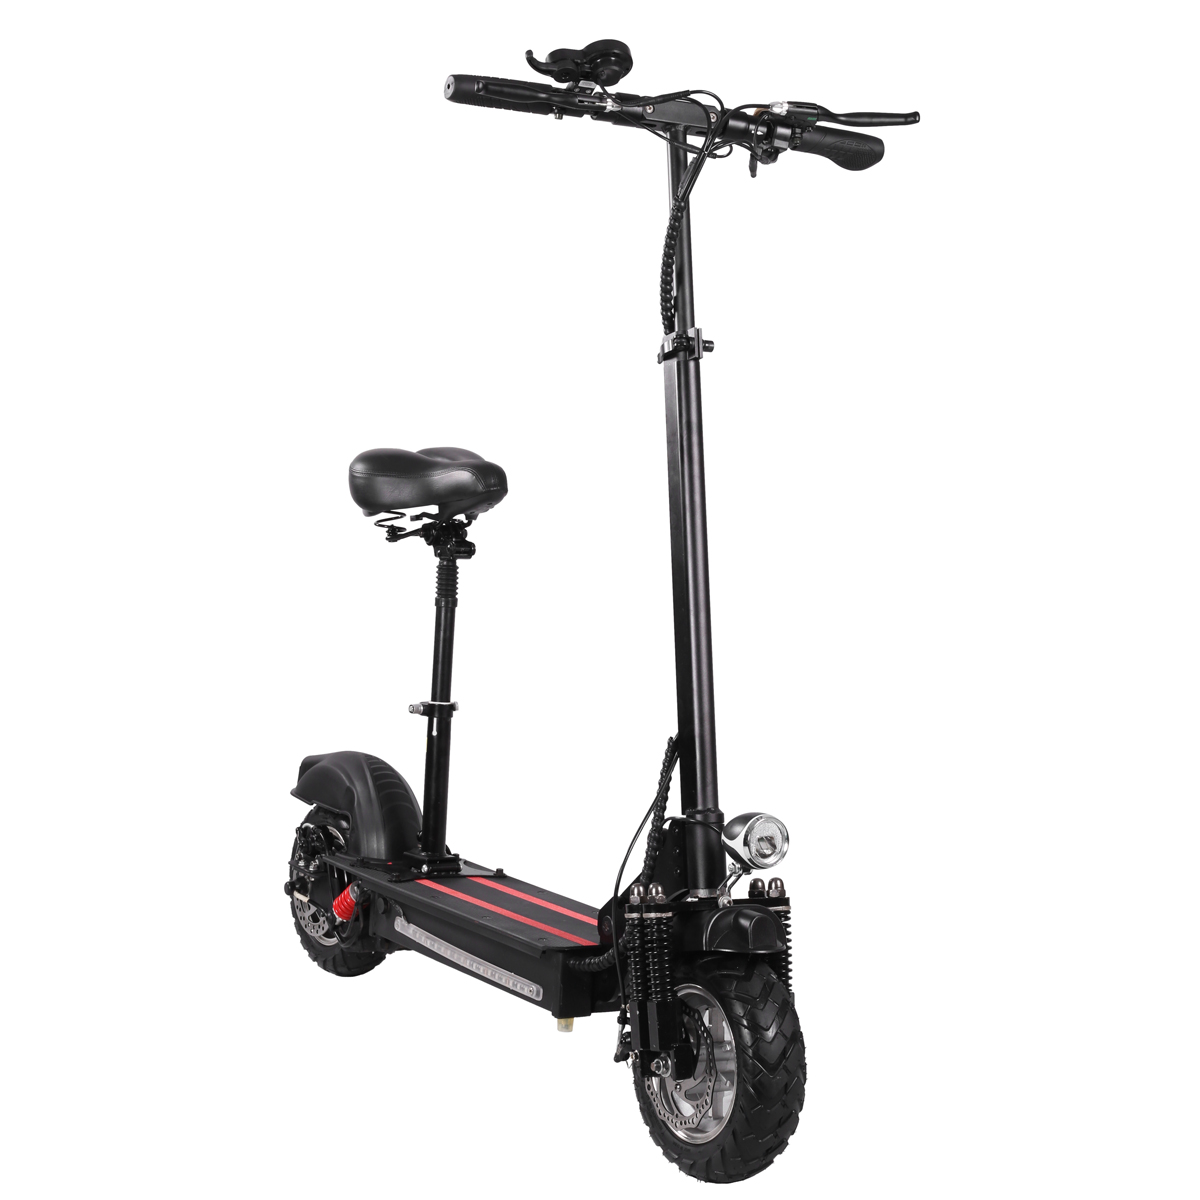 2019 new Hot Sell 48V 2400W adult electric scooter dual motor with pedals, White;black;blue;golden or oem